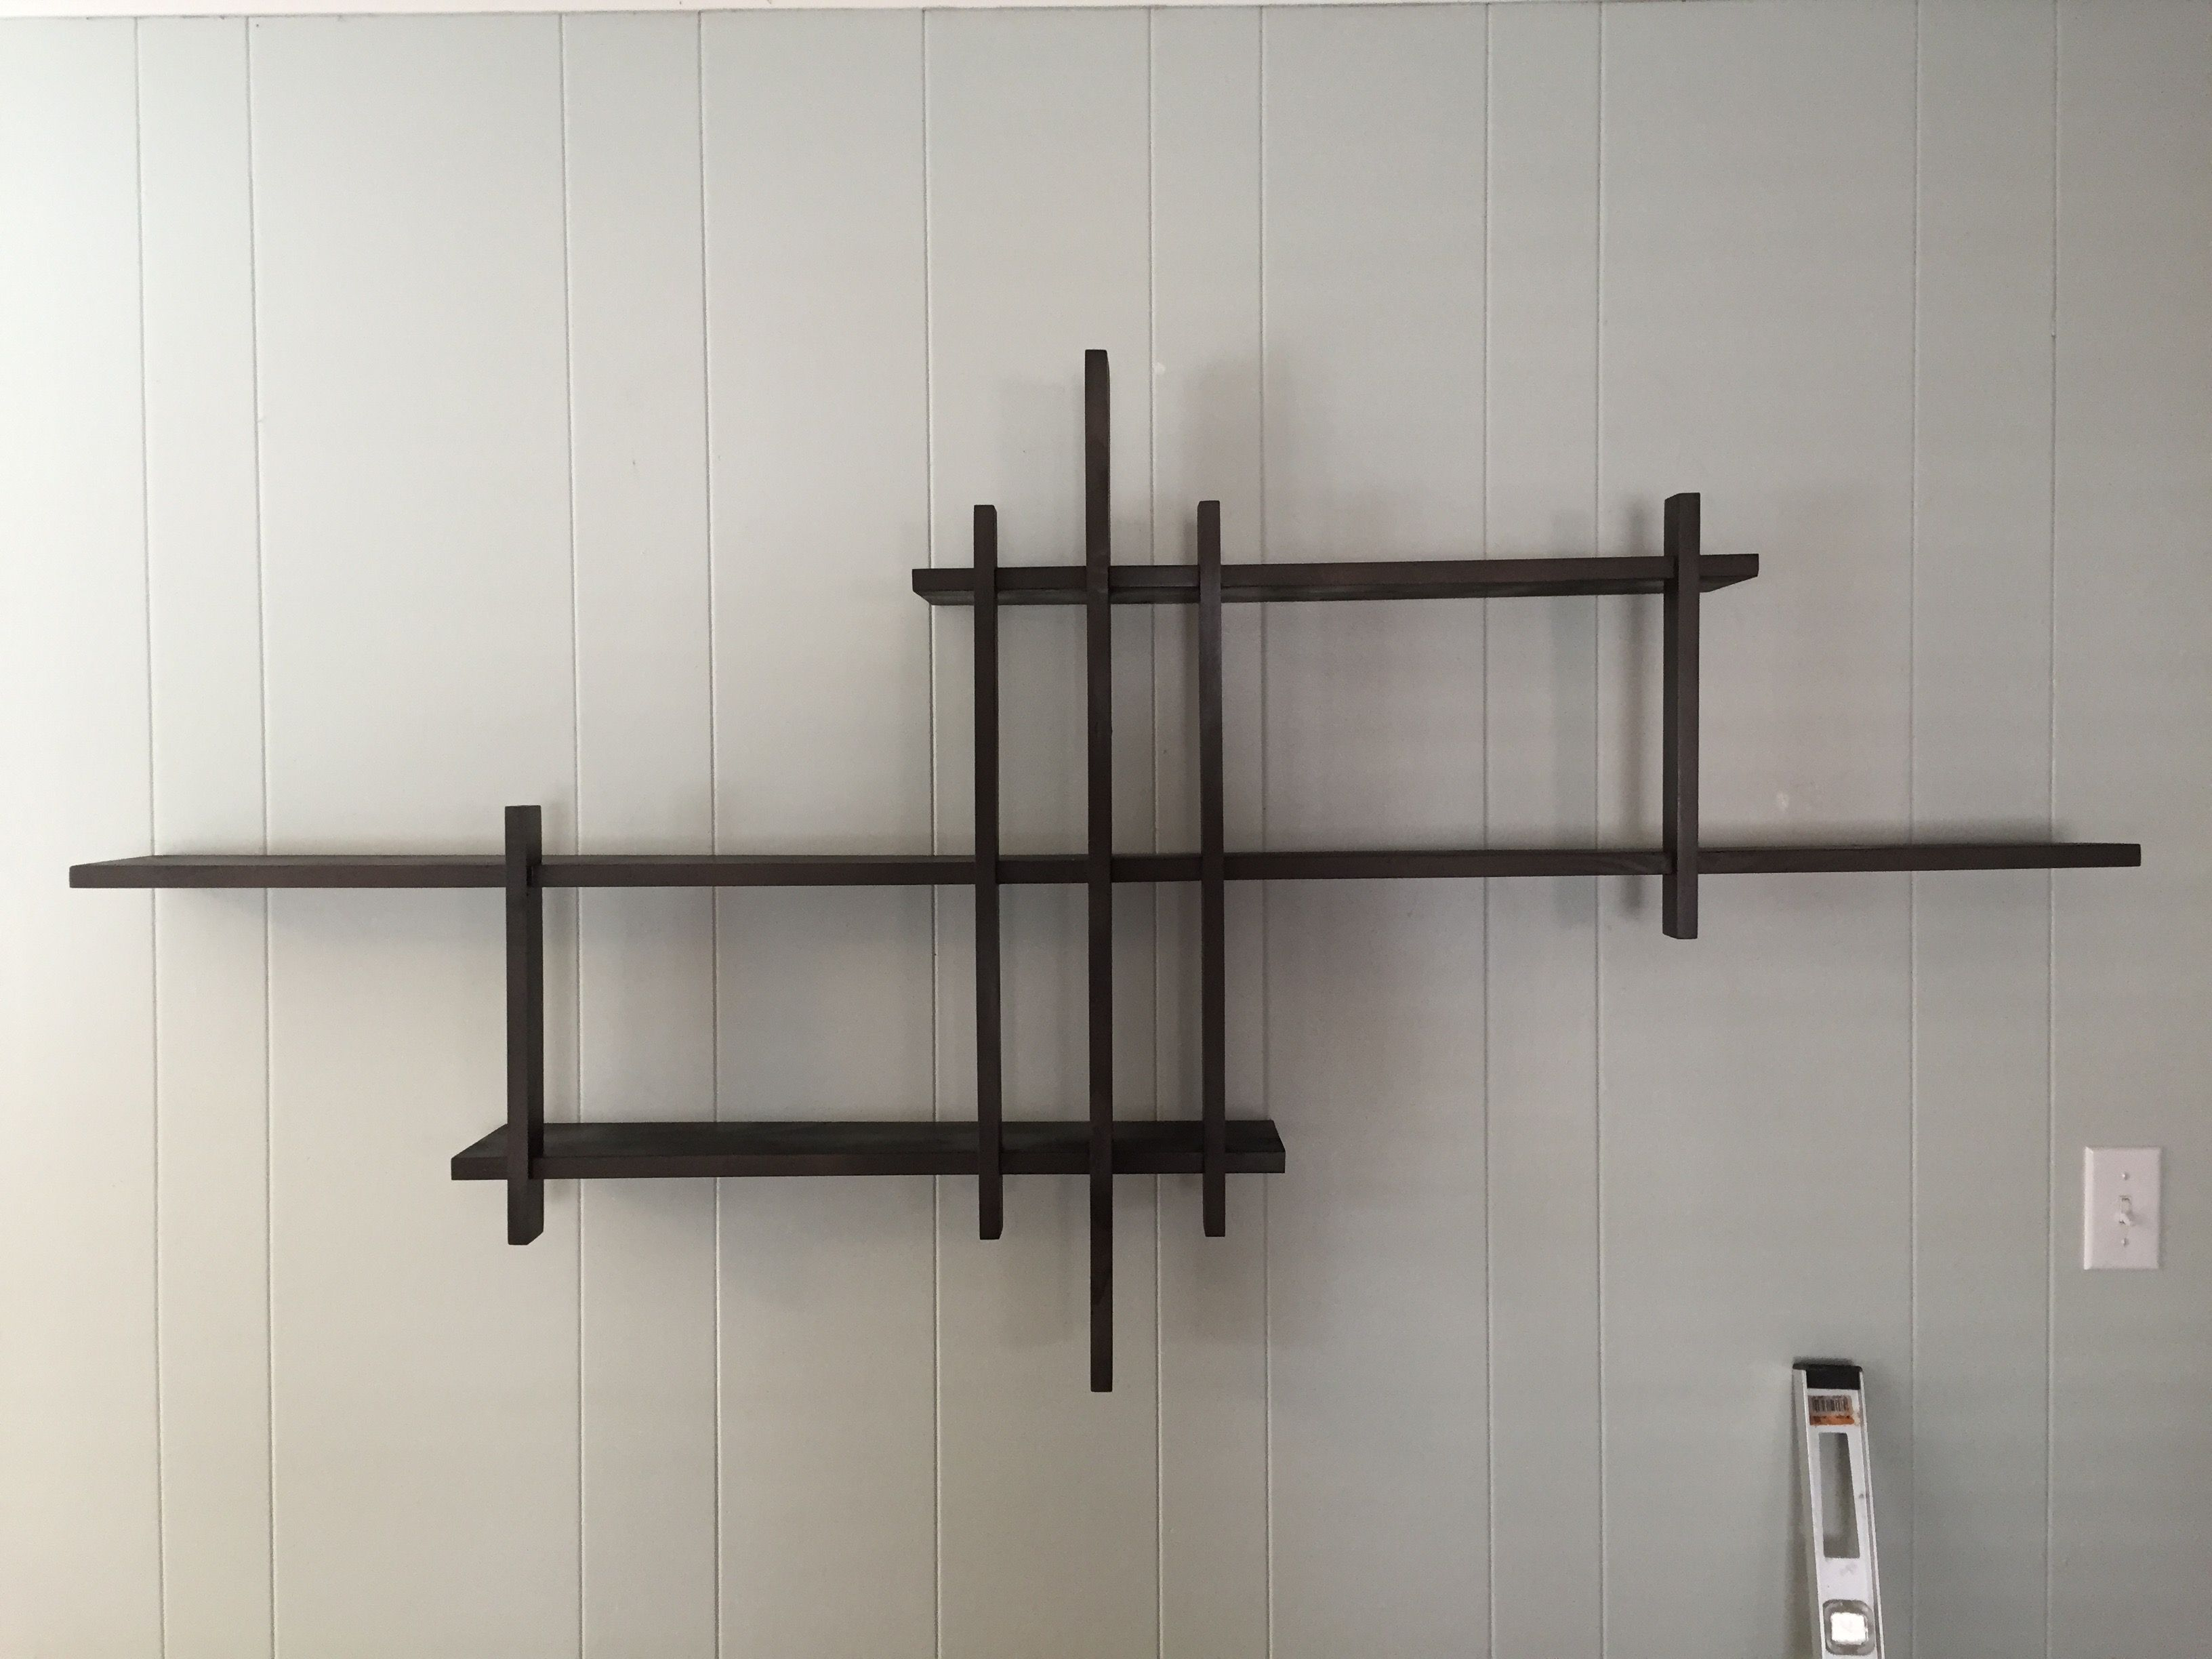 Built this shelving unit over the weekend using 1x2 1x4 and 1x6